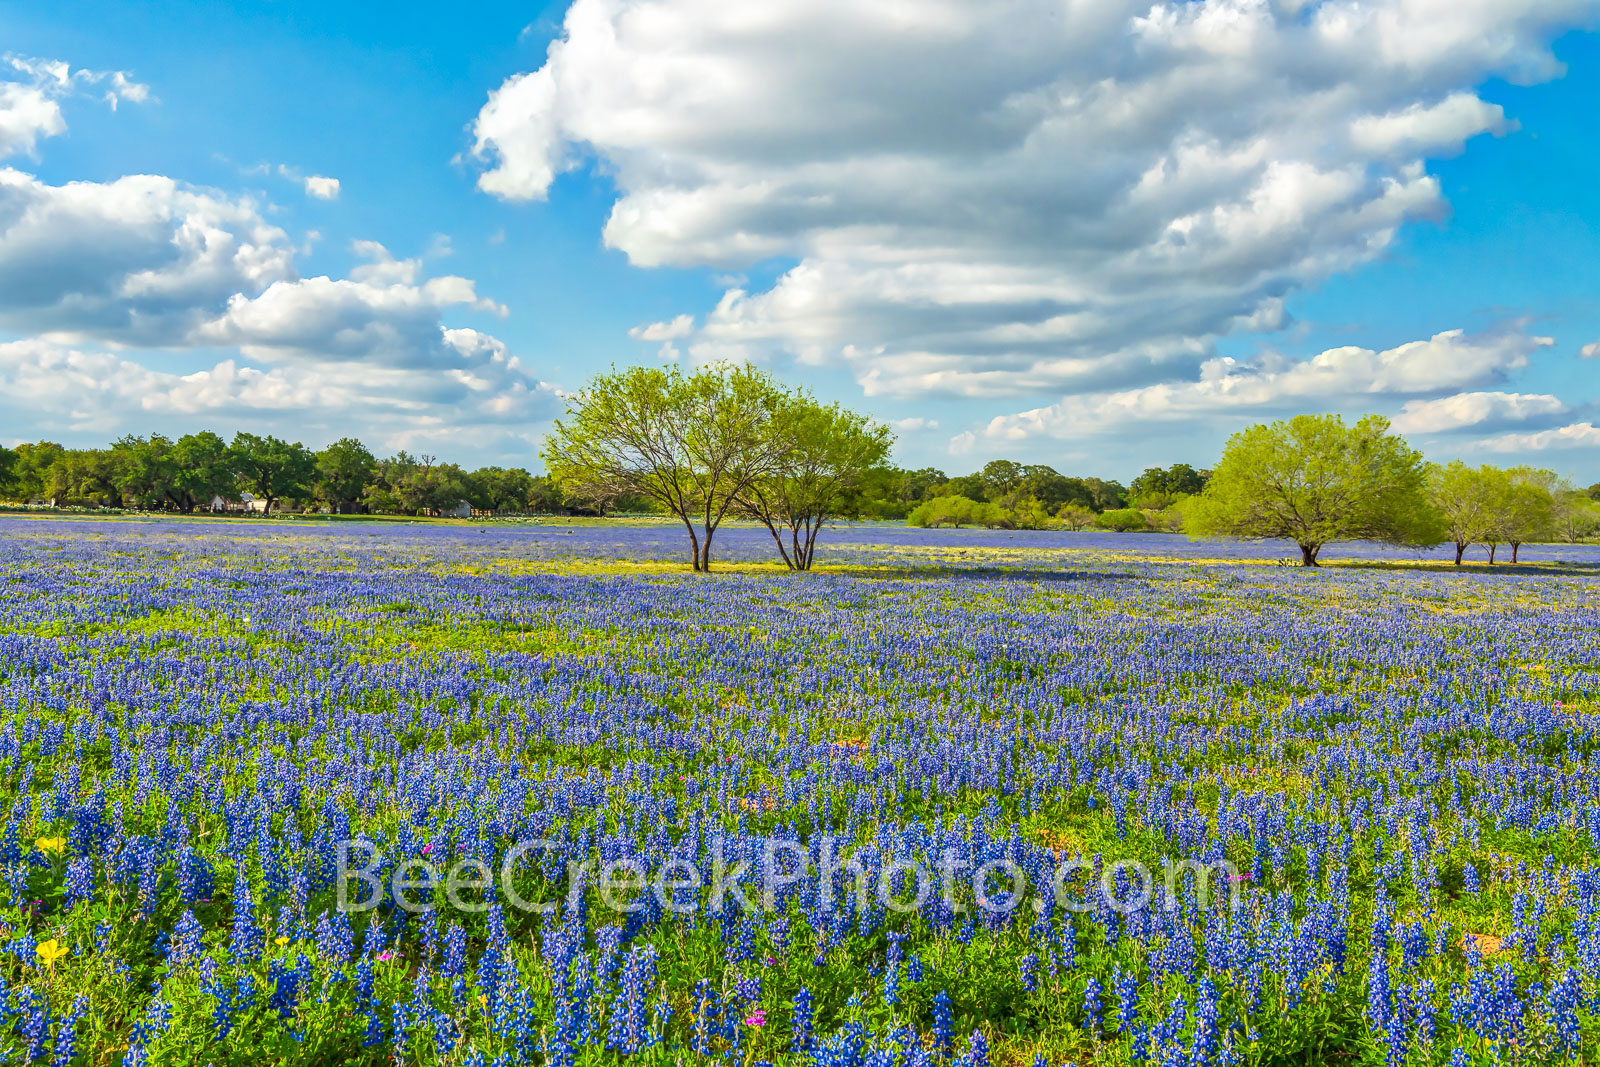 bluebonnets, mesquite trees, ranch, poppies, texas wildflowers, San Antonio, Poteet, Texas, green, blue, field, south texas, images of bluebonnets, pictures of bluebonnets,, photo